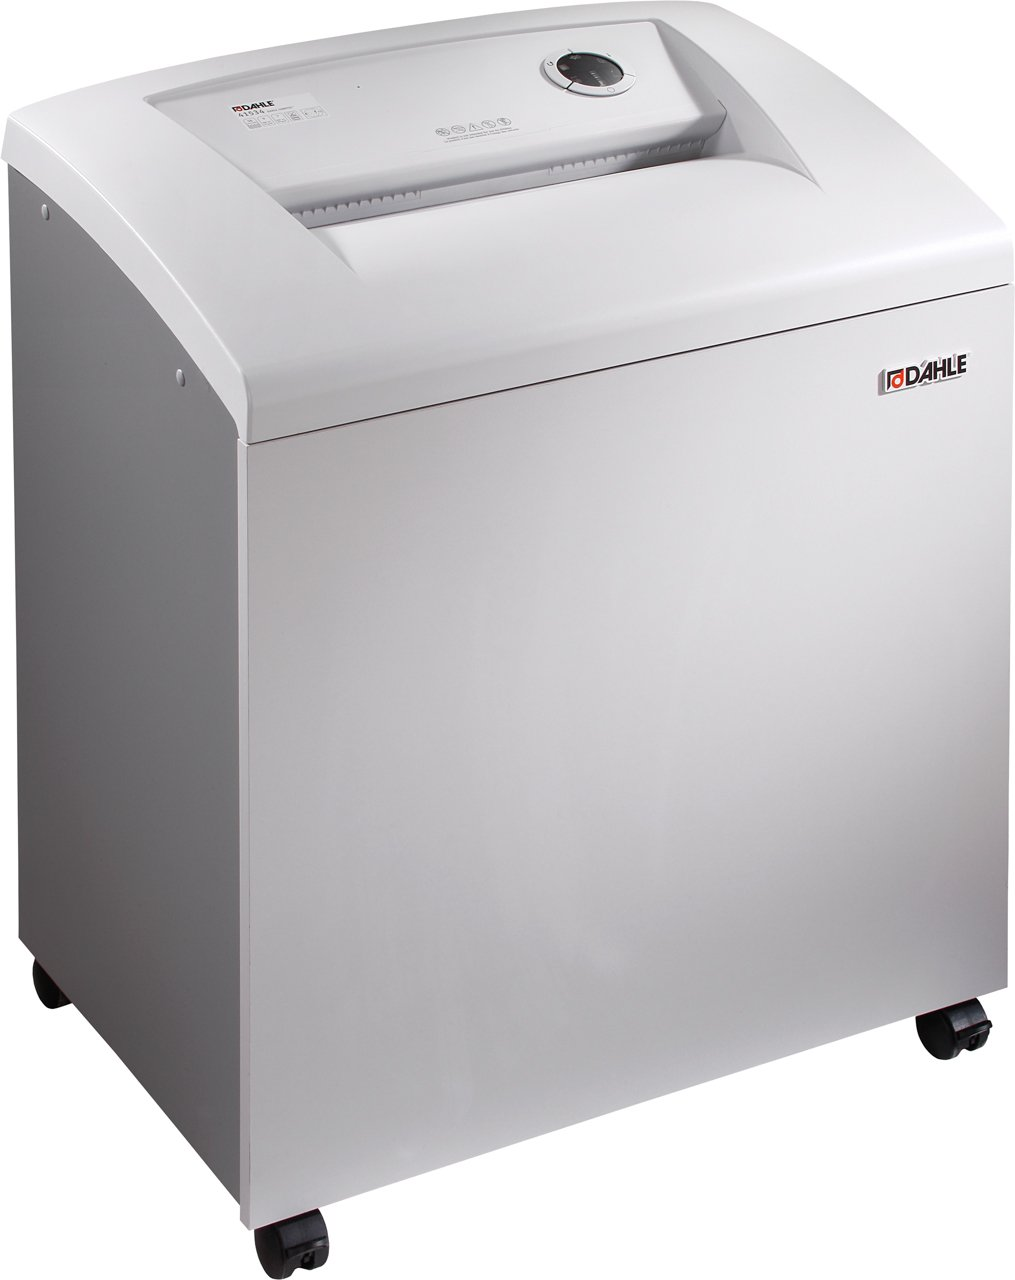 Dahle 40506 Small Department Shredder, 31-36 Sheet, Strip Cut, Shreds CDs, Staples, Paper Clips, Credit Cards, Security Level P-2